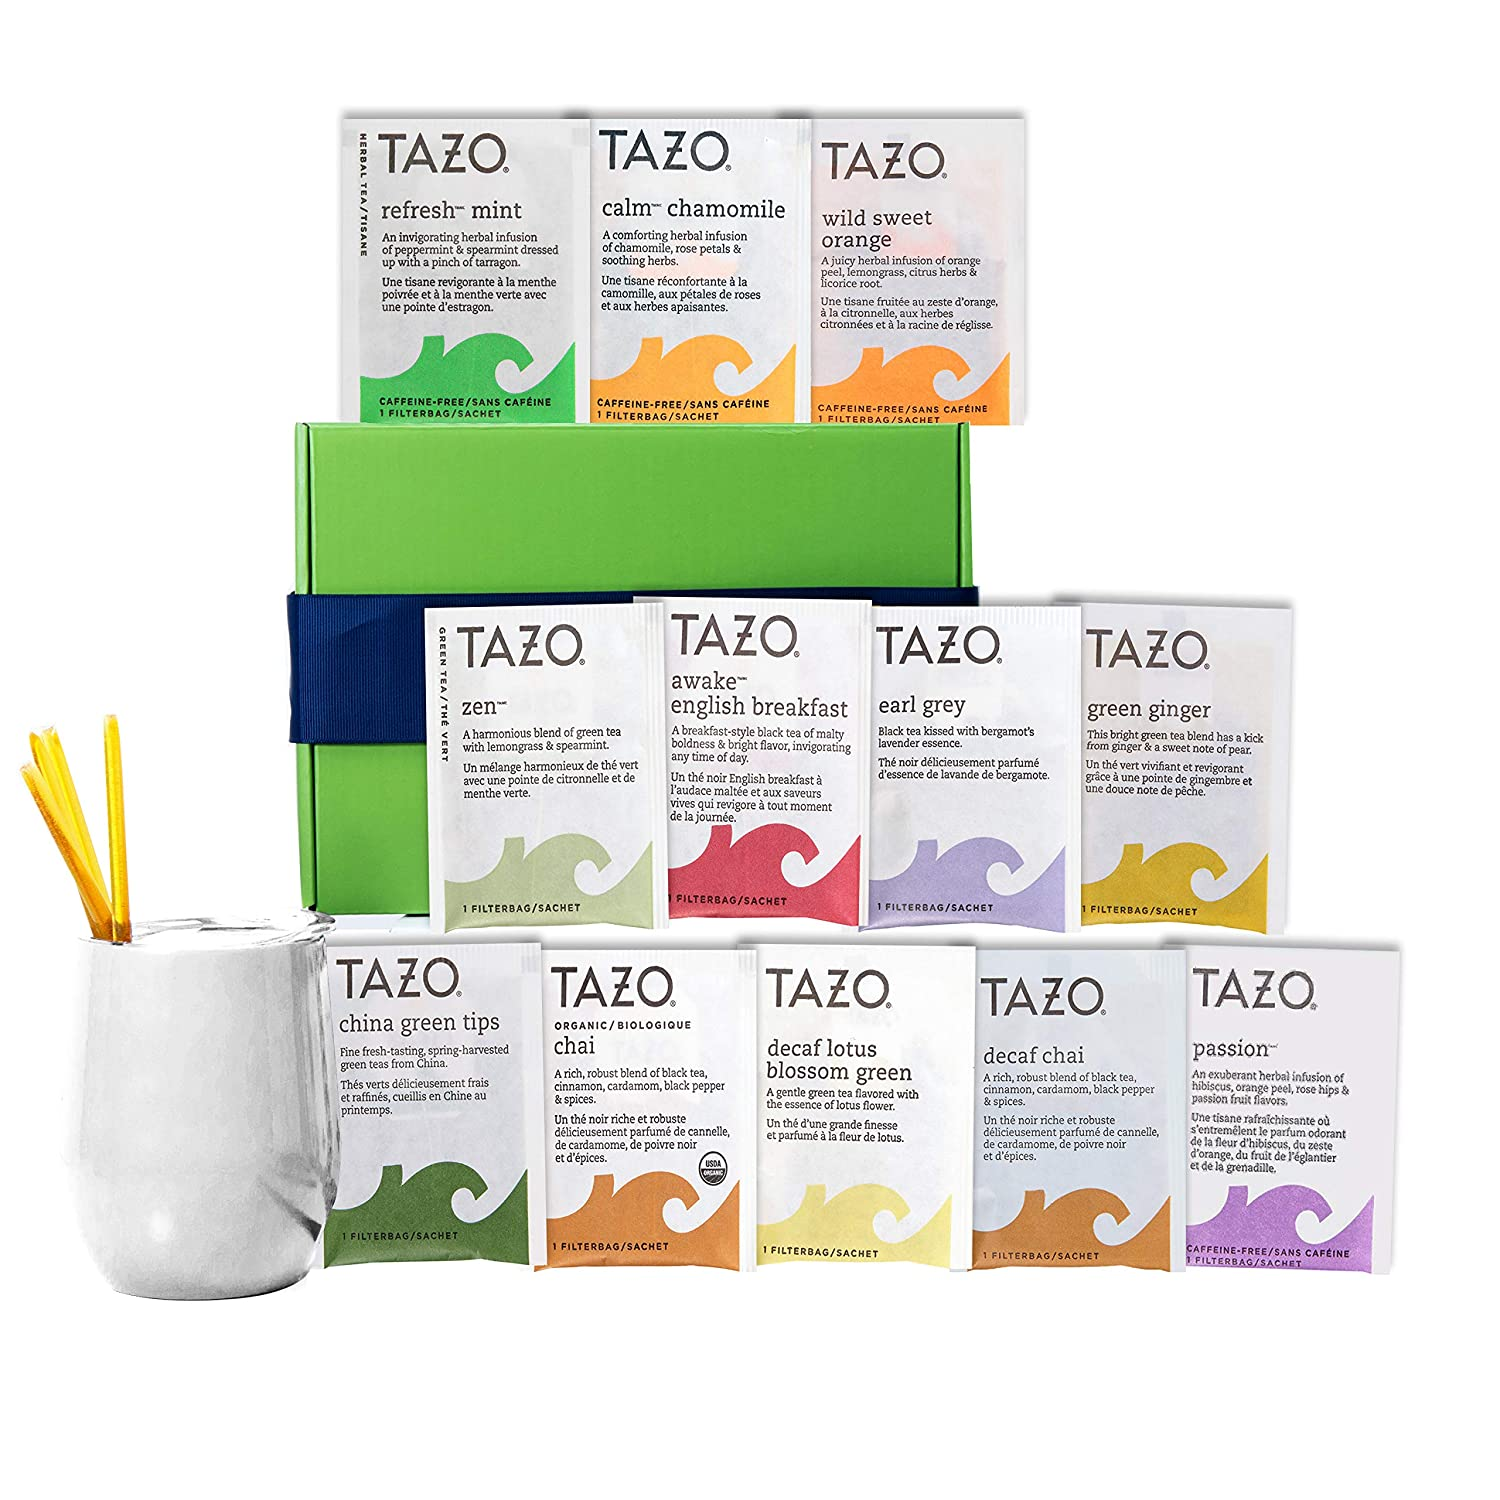 Tea Gift Set for Tea Lovers - Includes Double Insulated Tea Cup 12 Uniquely Blended Teas and All Natural Honey Straws | Tea Gift Sets for Women Men | Tea Gifts Box Presented in Beautiful Gift Box